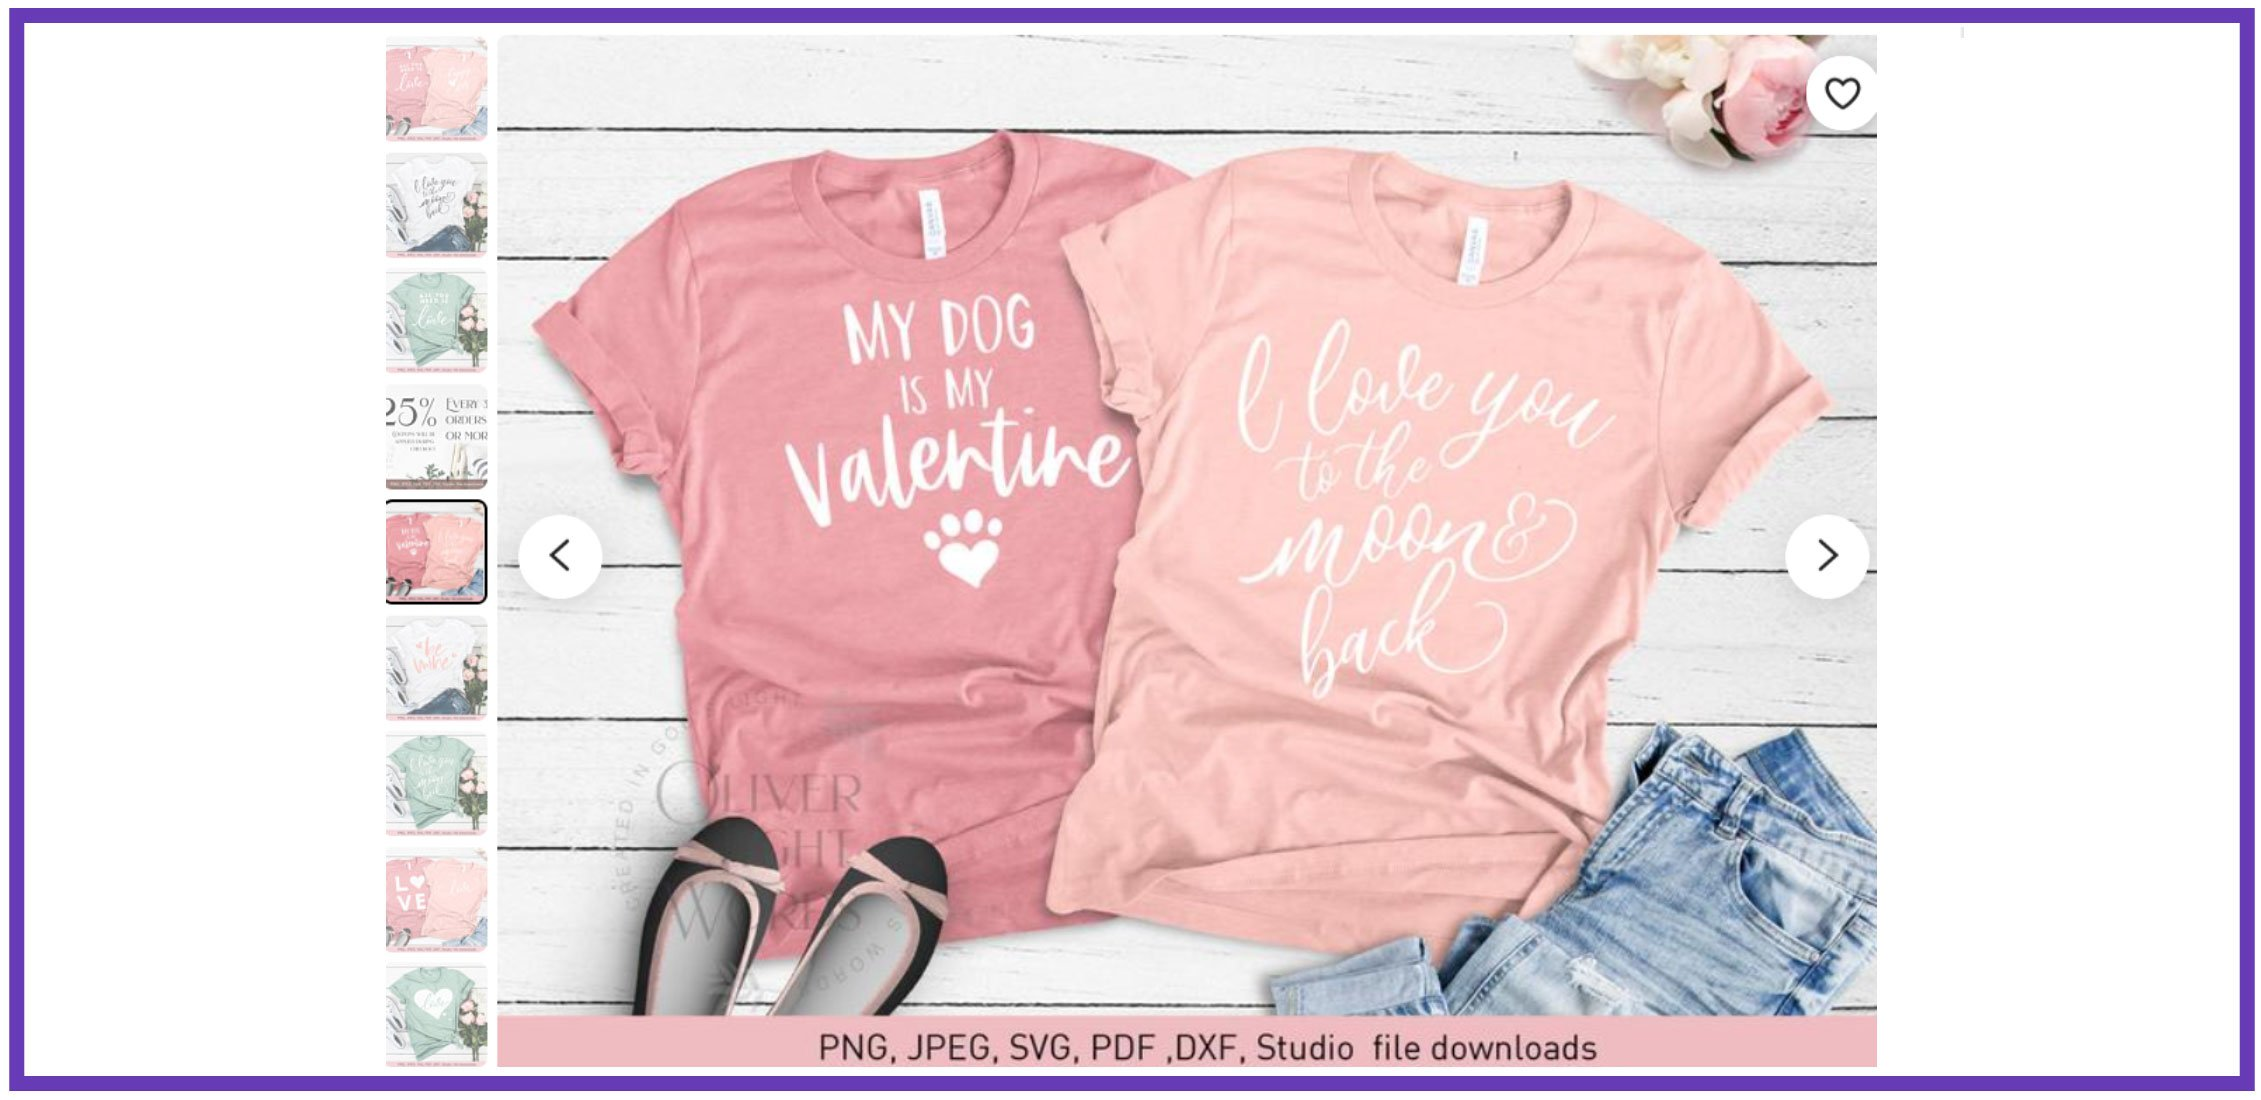 80+ Valentine's Day Shirts. Best T-shirt Designs Ideas For St. Valentine's Day - valentines day shirt design 12